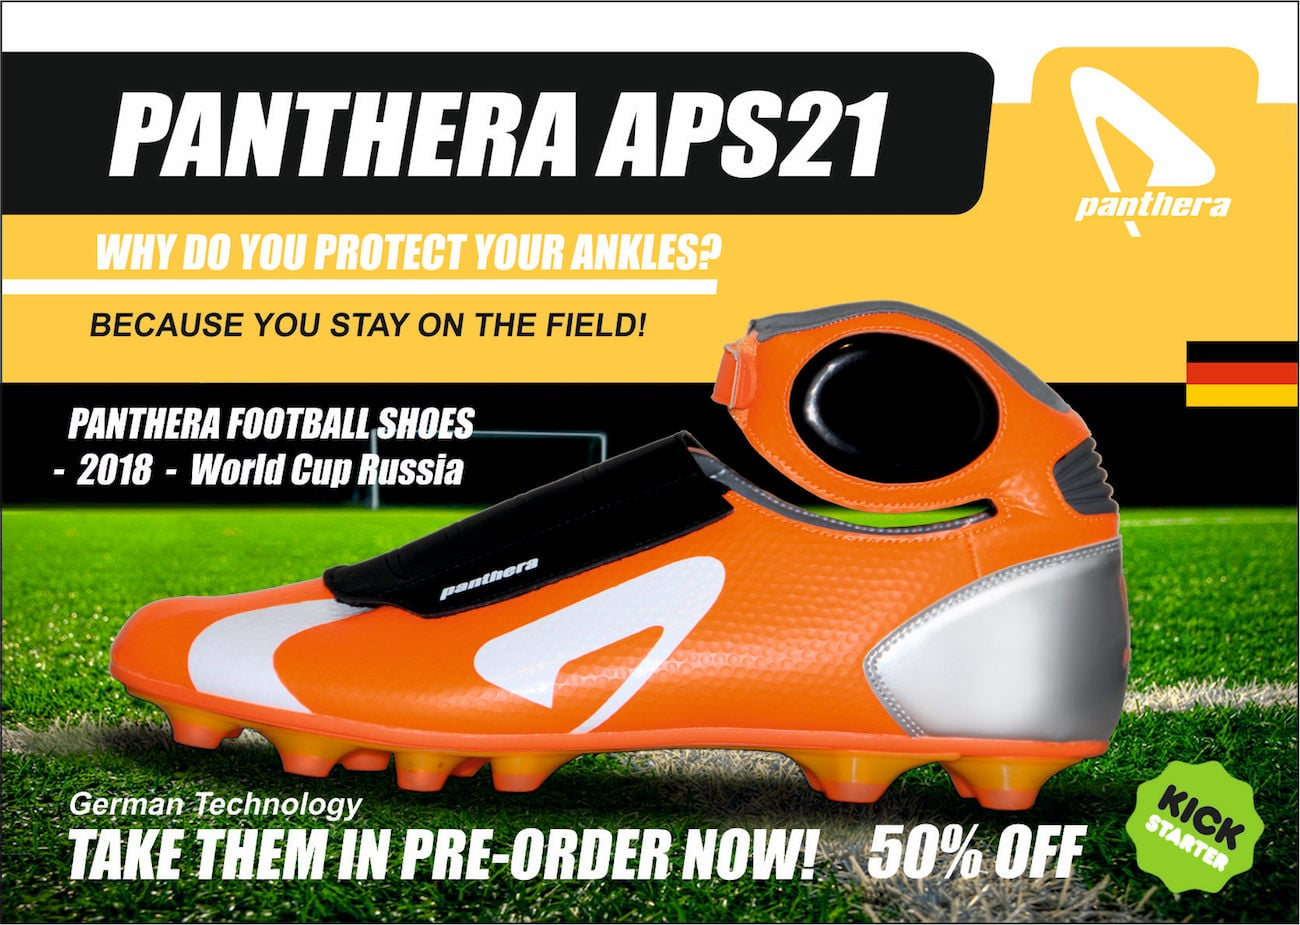 APS21 Panthera Ankle Protecting Football Shoes